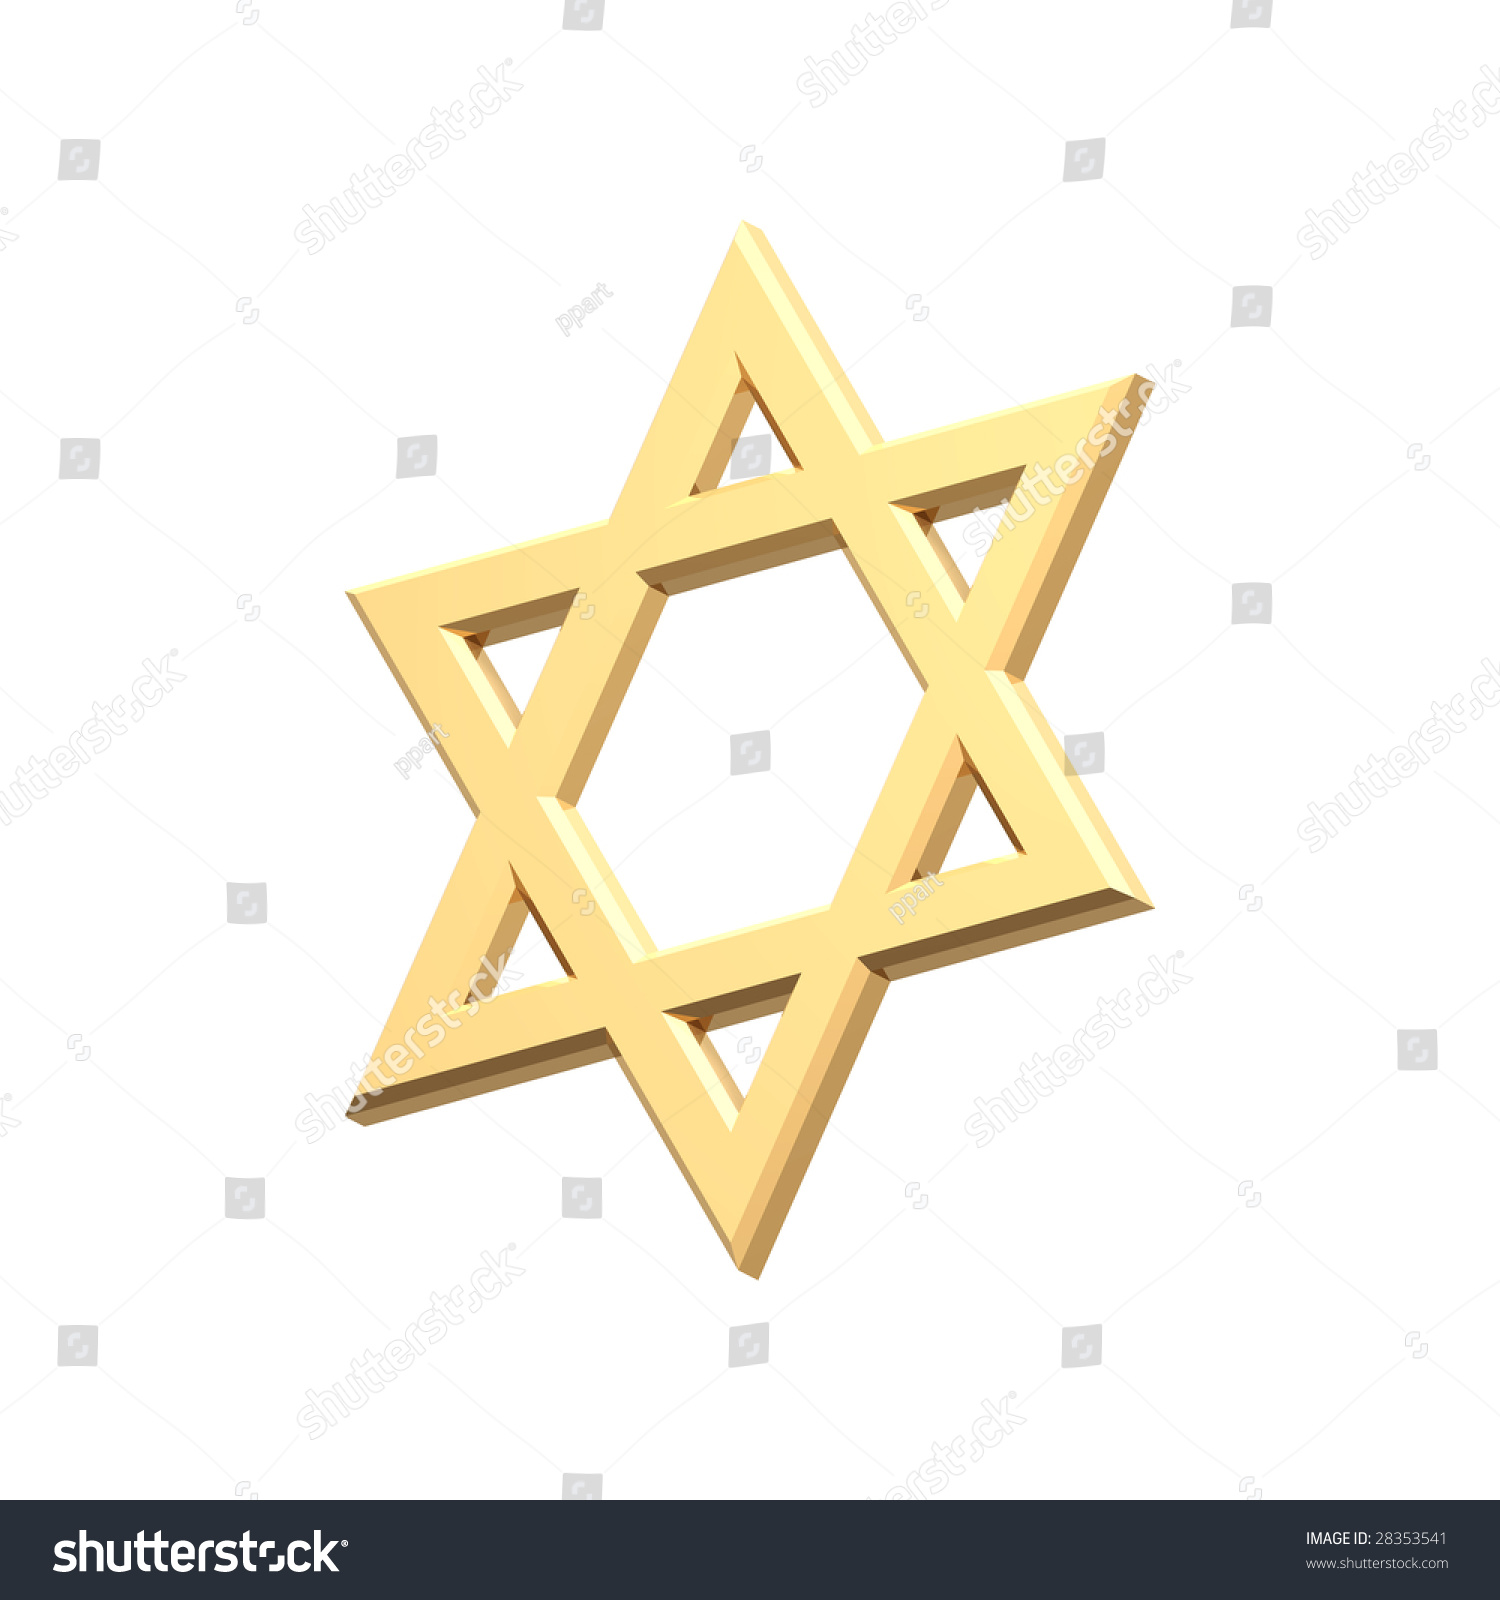 Gold judaism religious symbol star david stock illustration gold judaism religious symbol star of david isolated on white computer generated 3d photo biocorpaavc